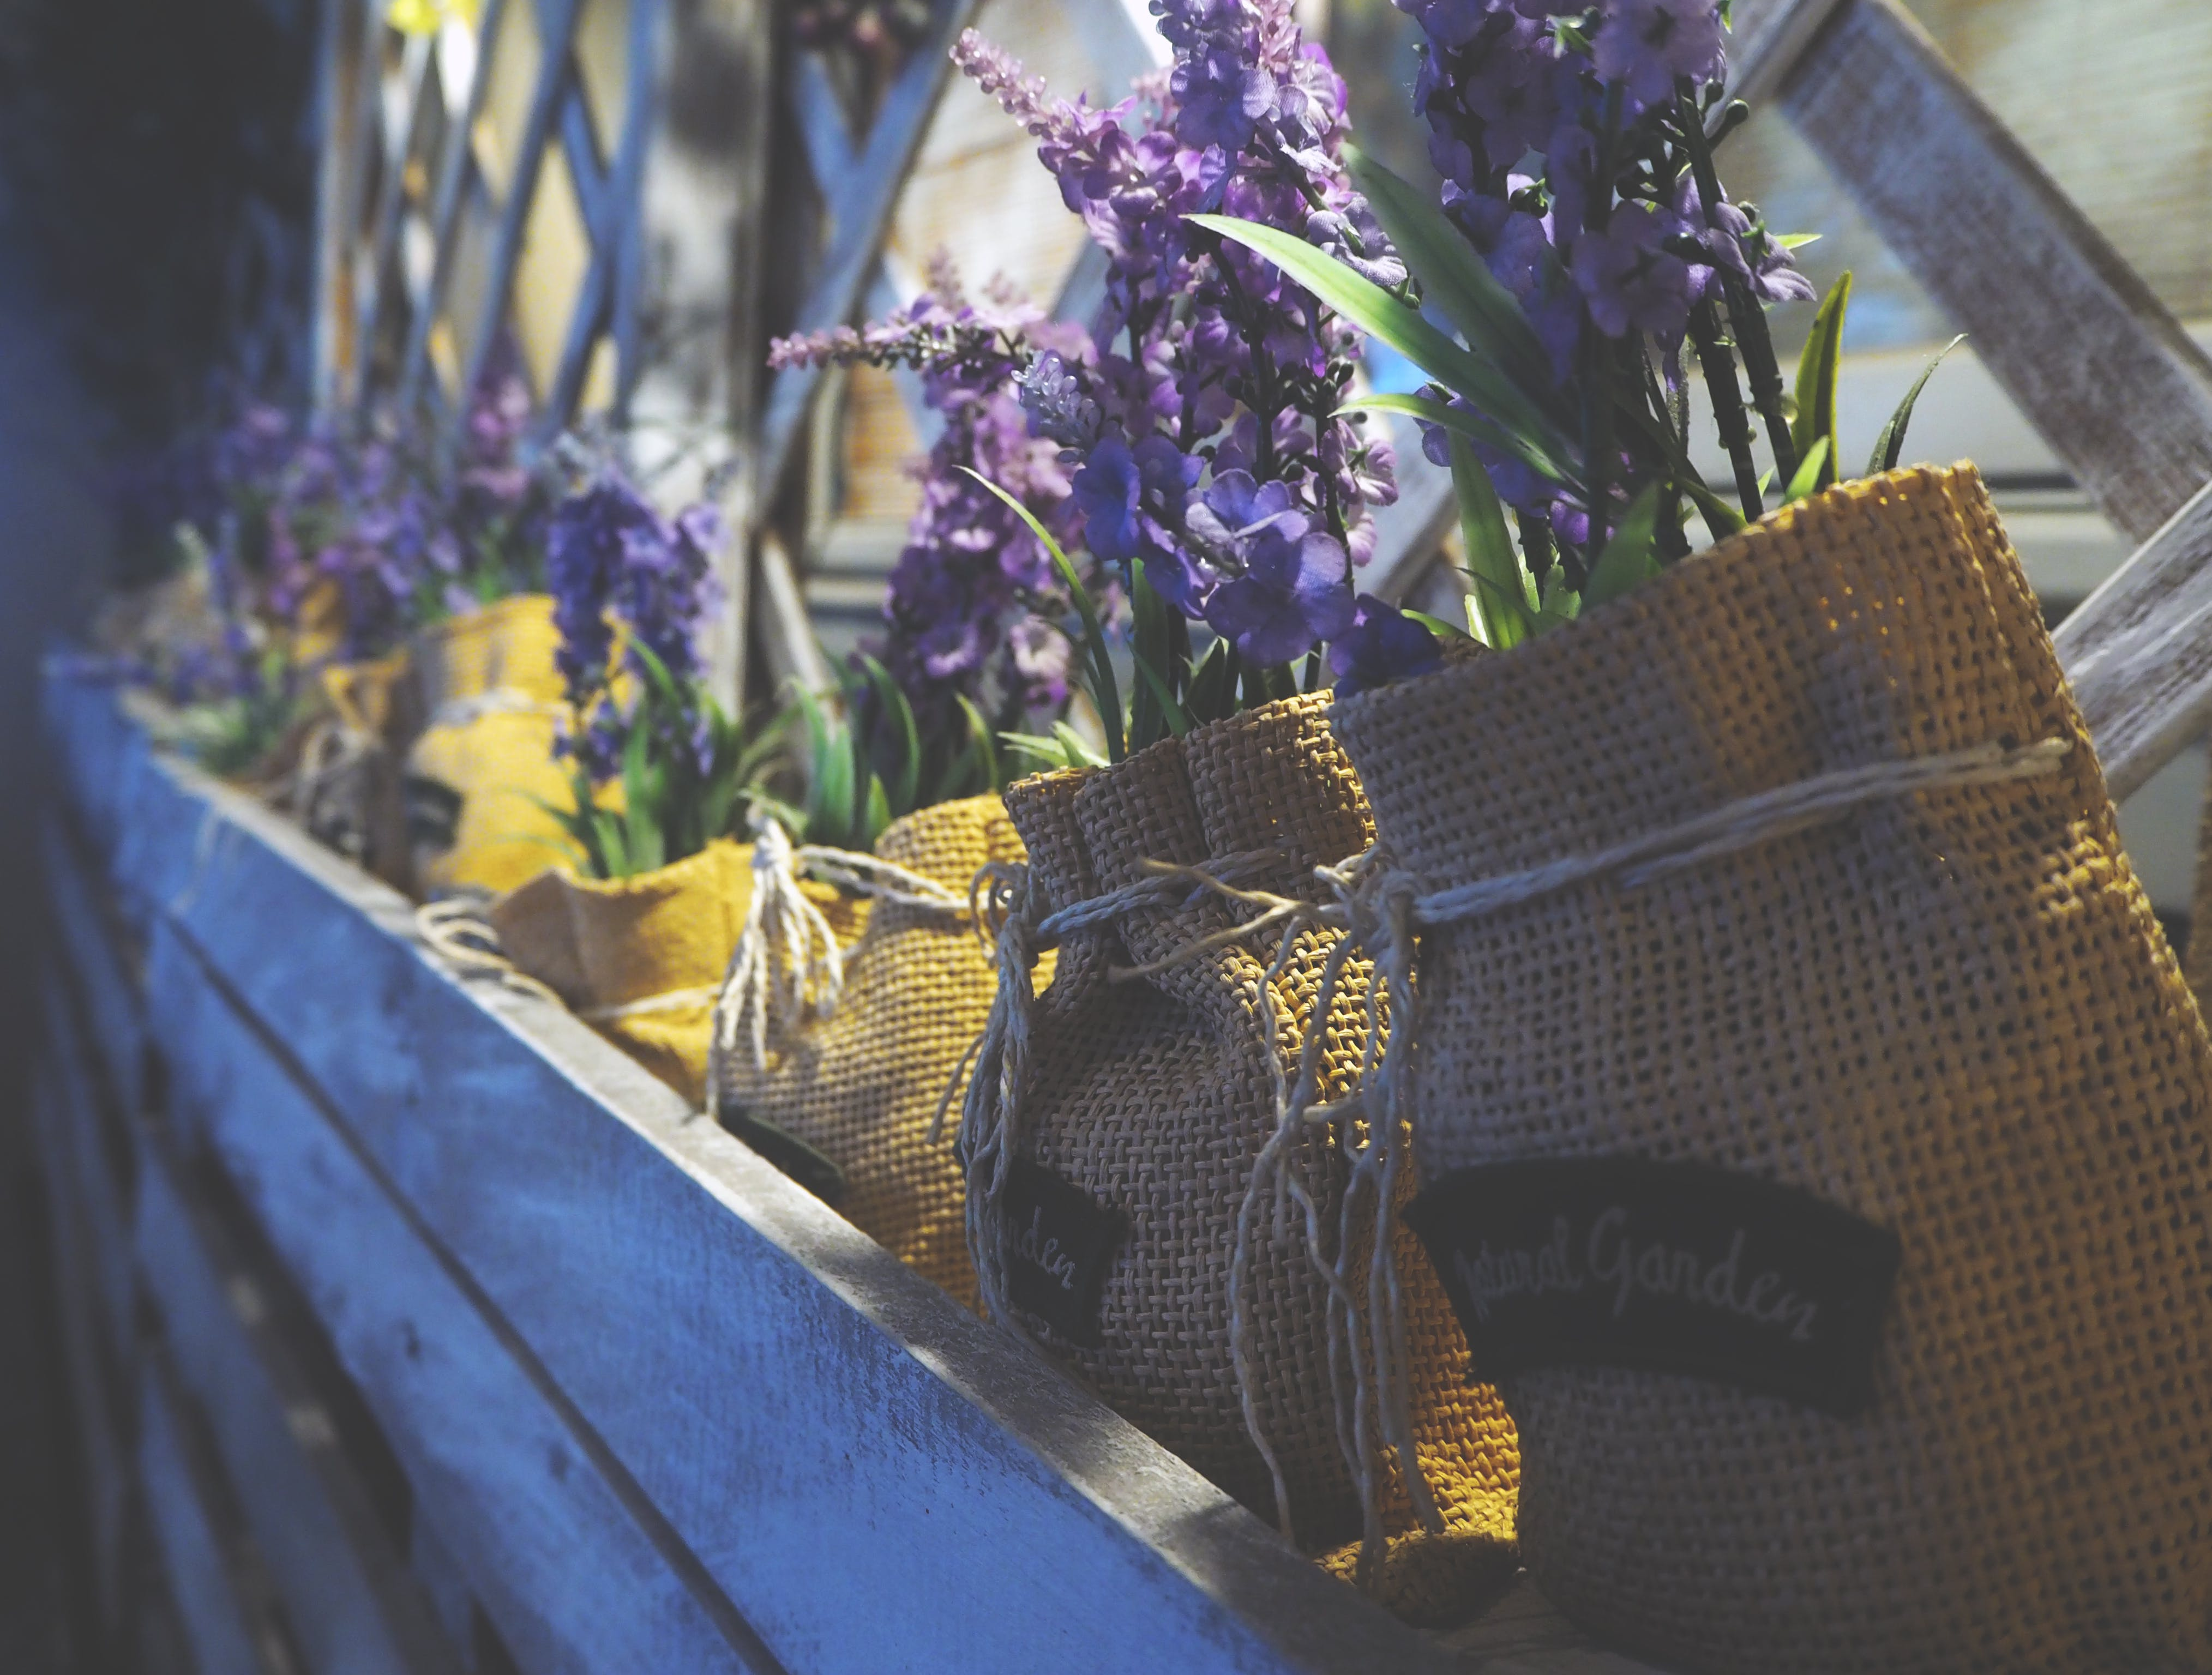 Purple Flowers in Yellow Pouches on Window Ledge